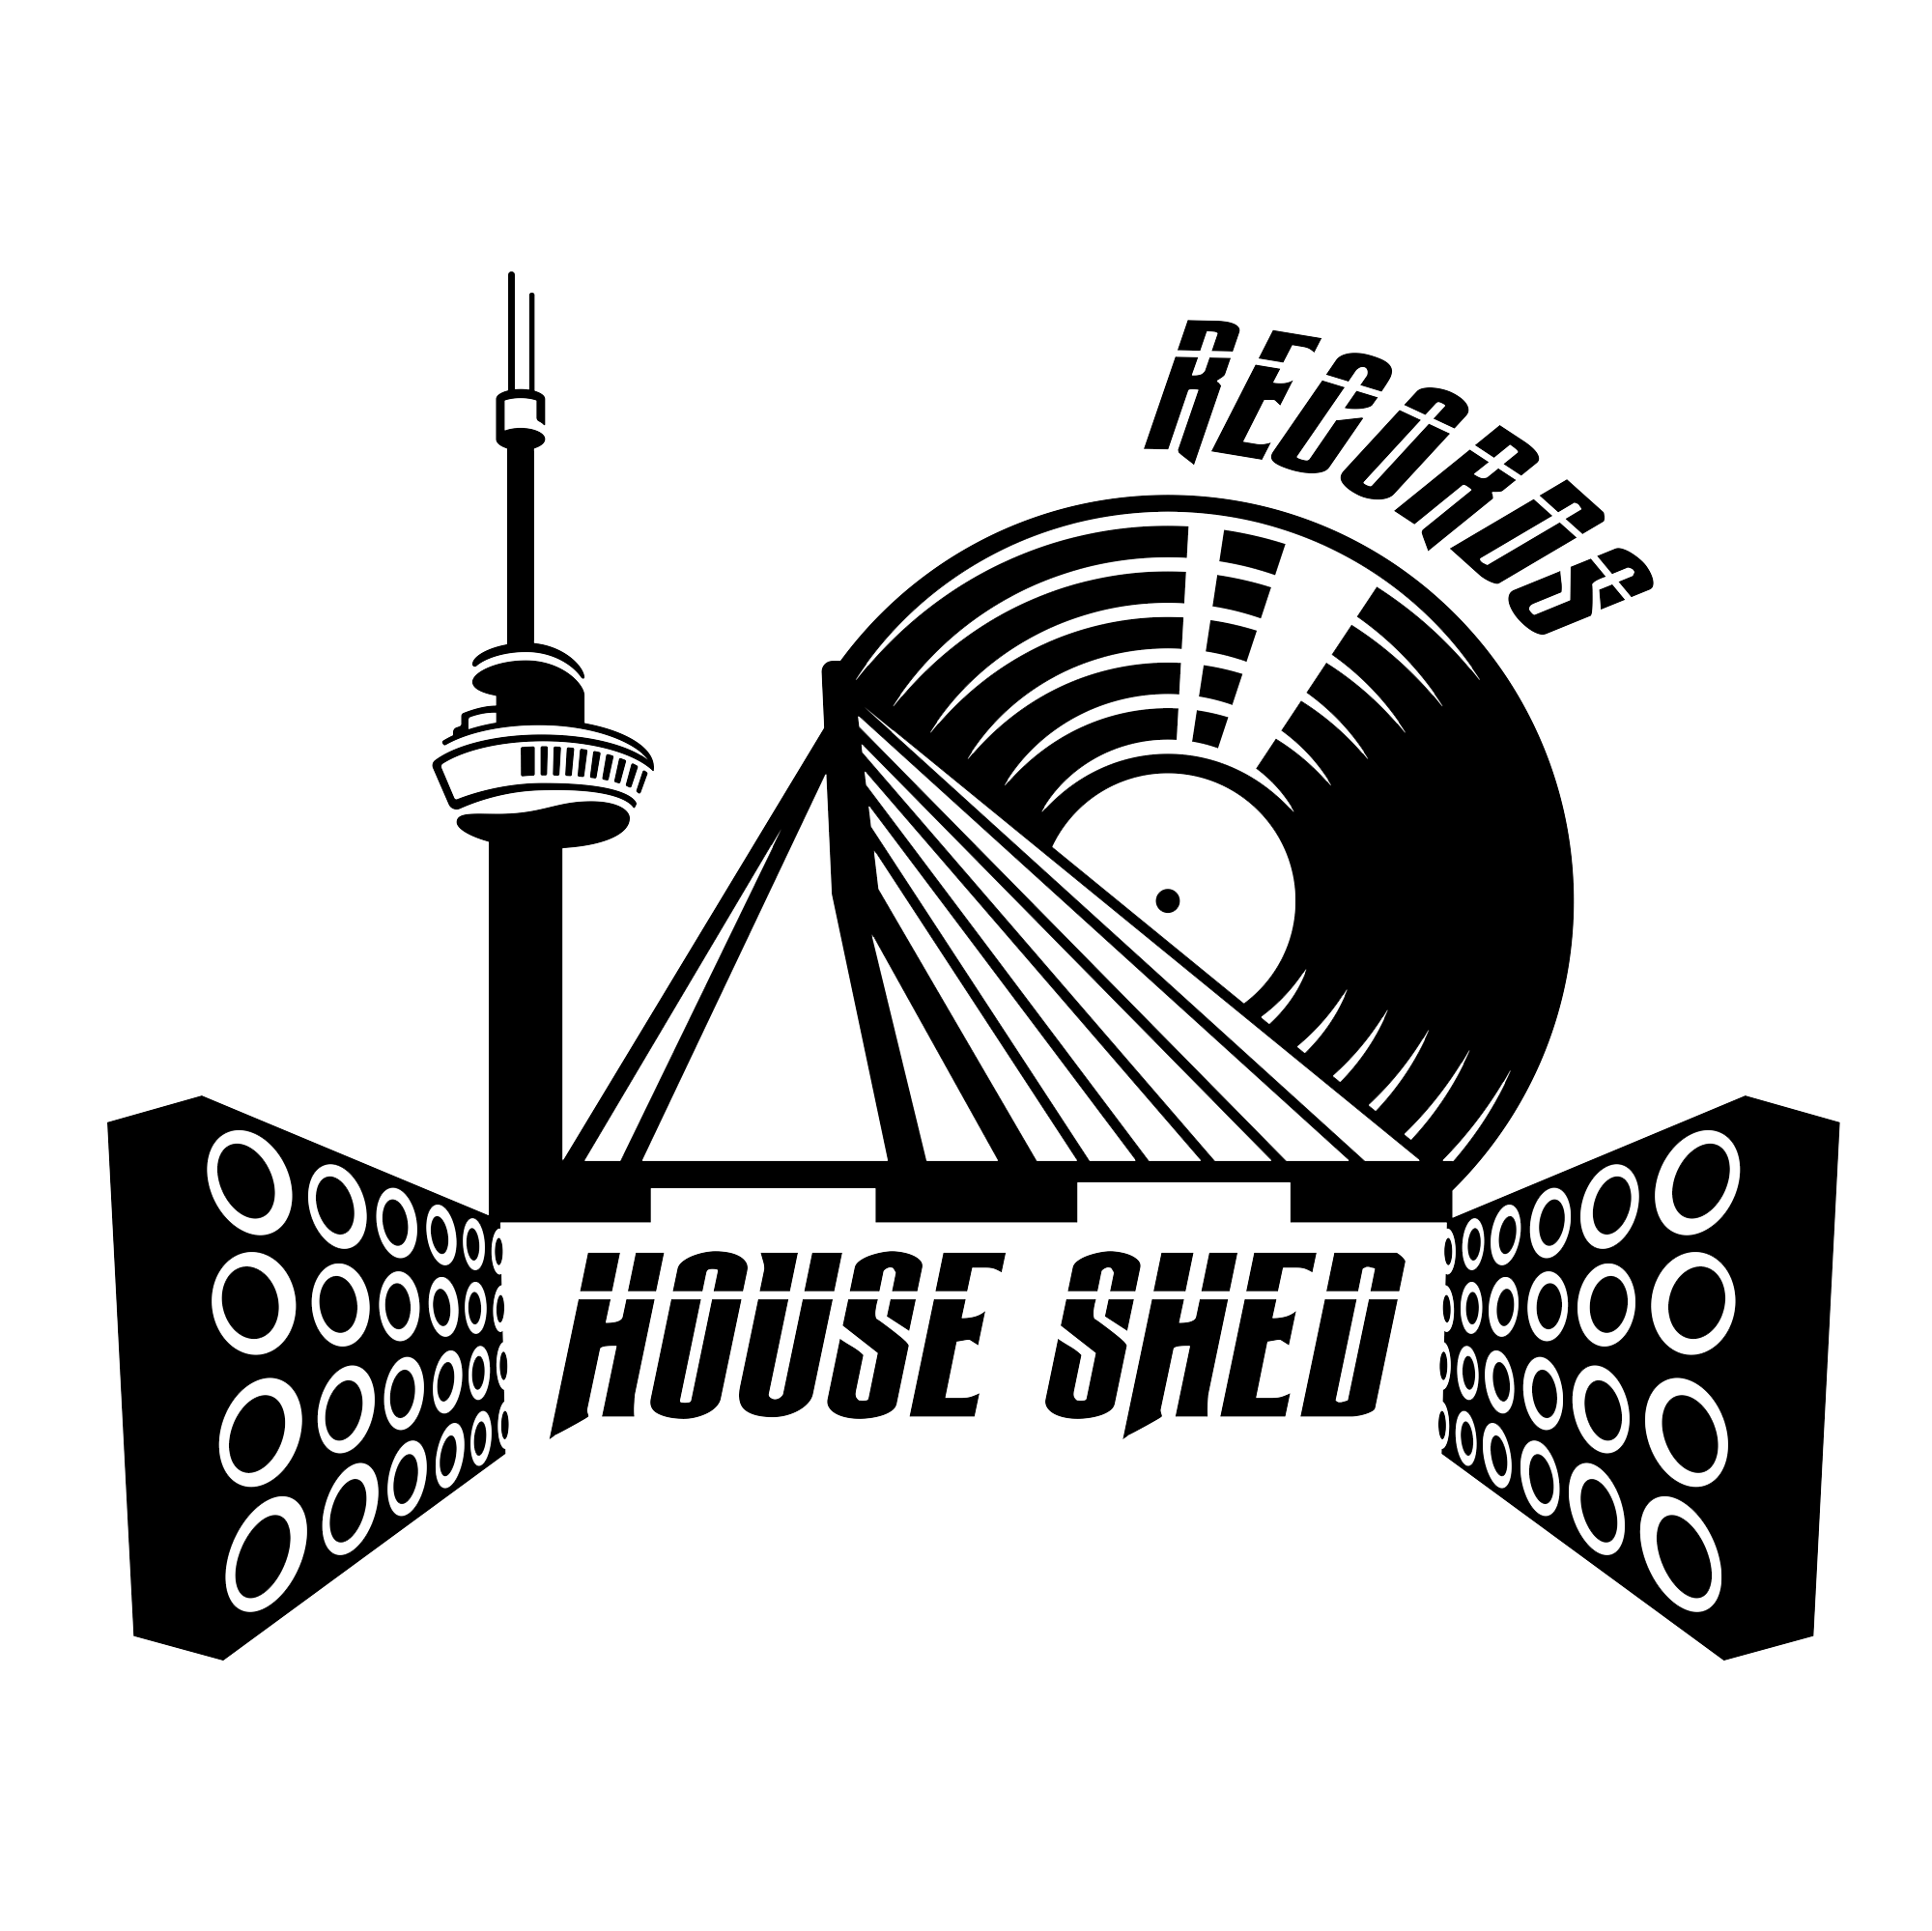 housshedrecords